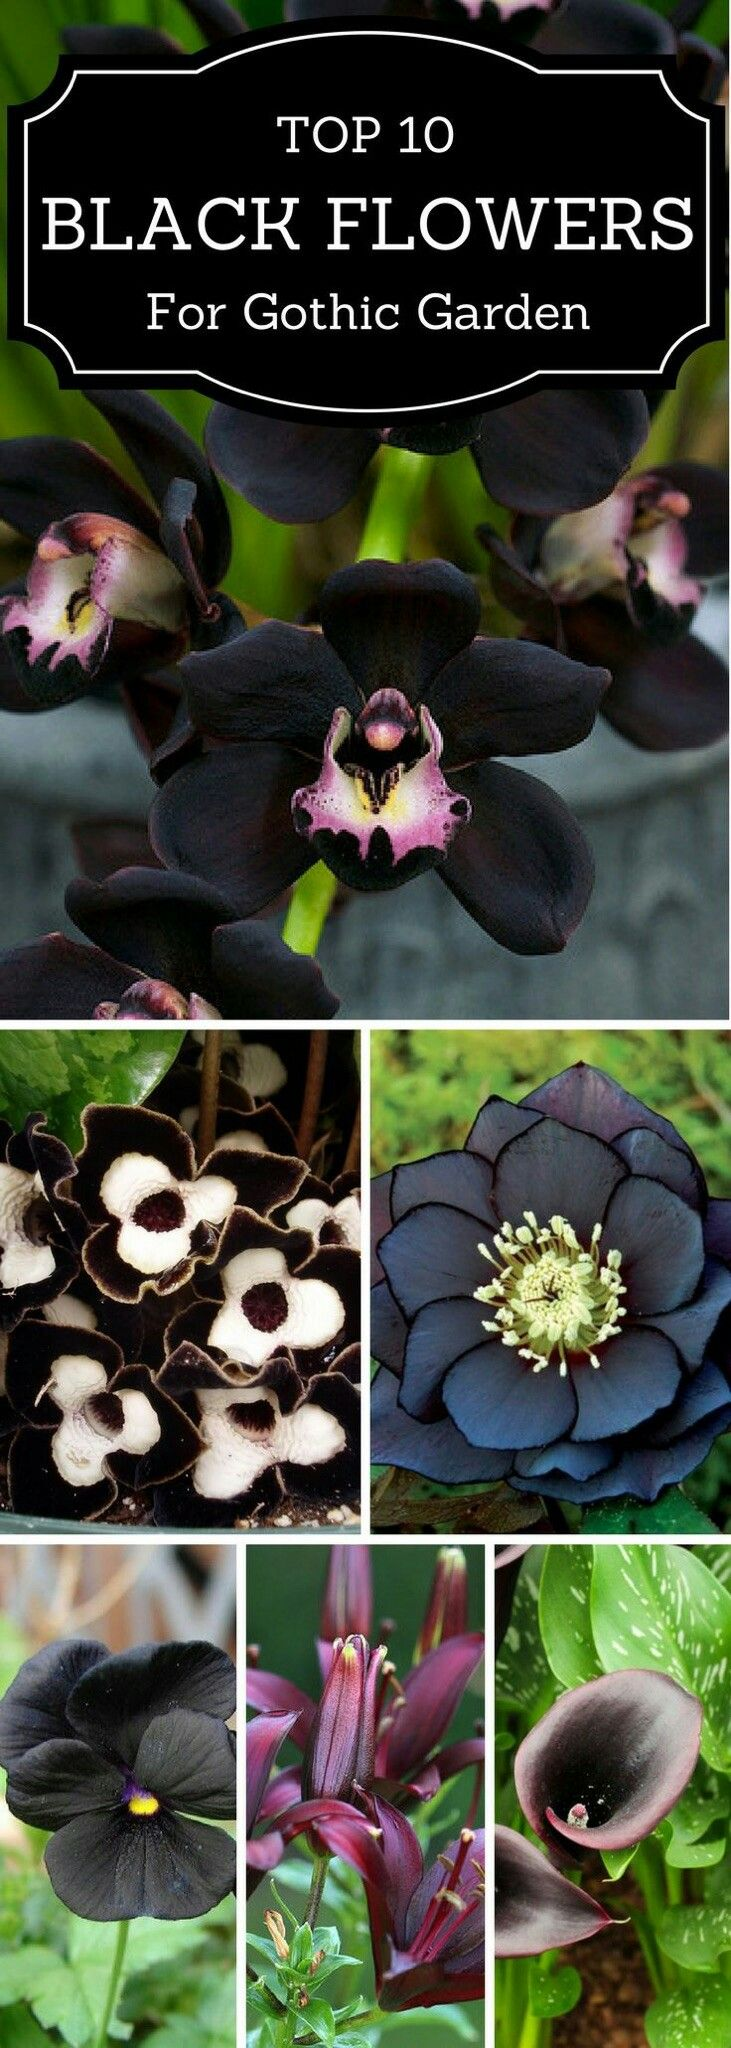 Pin By Tuppence Van Harn On My Pretentious Front Garden Pinterest